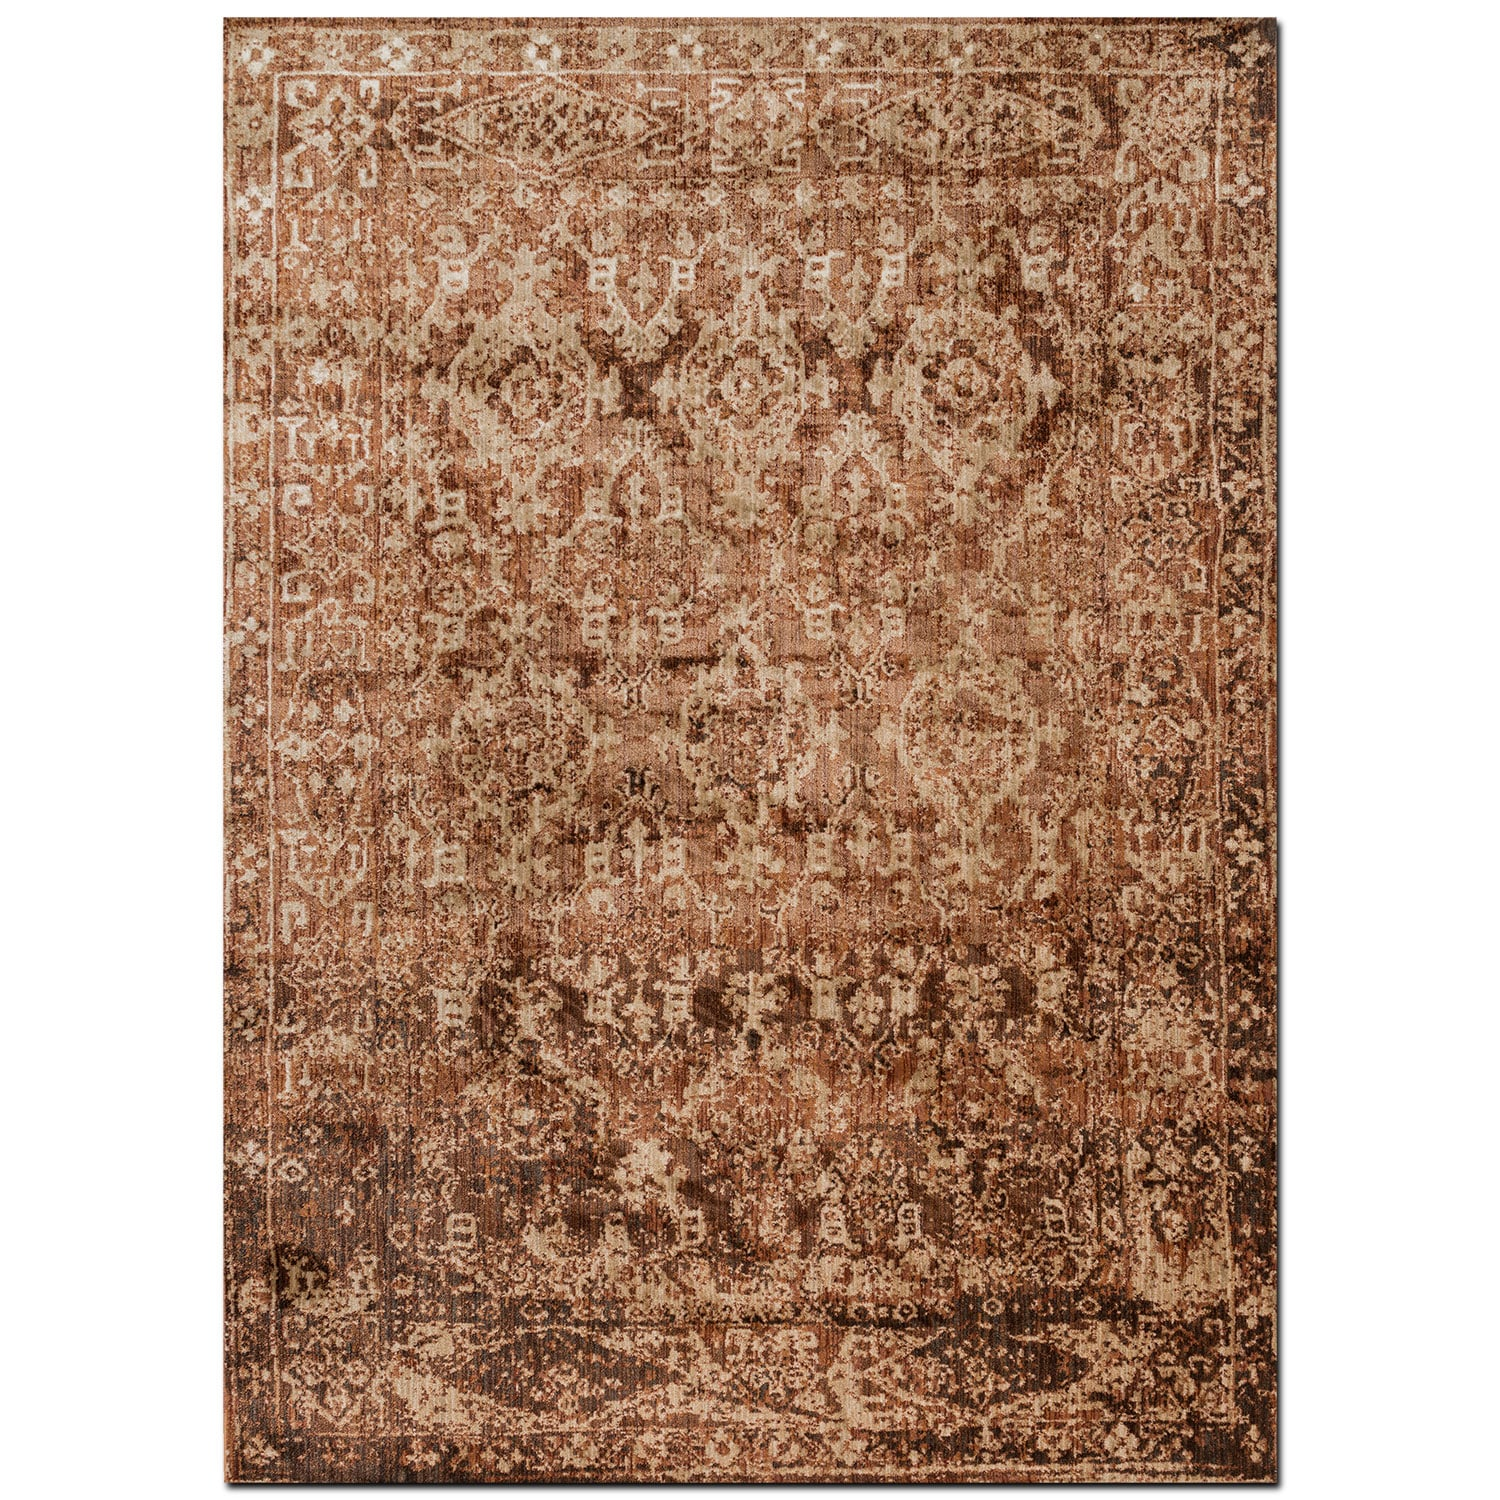 Kivi 4' x 6' Rug - Sand and Copper